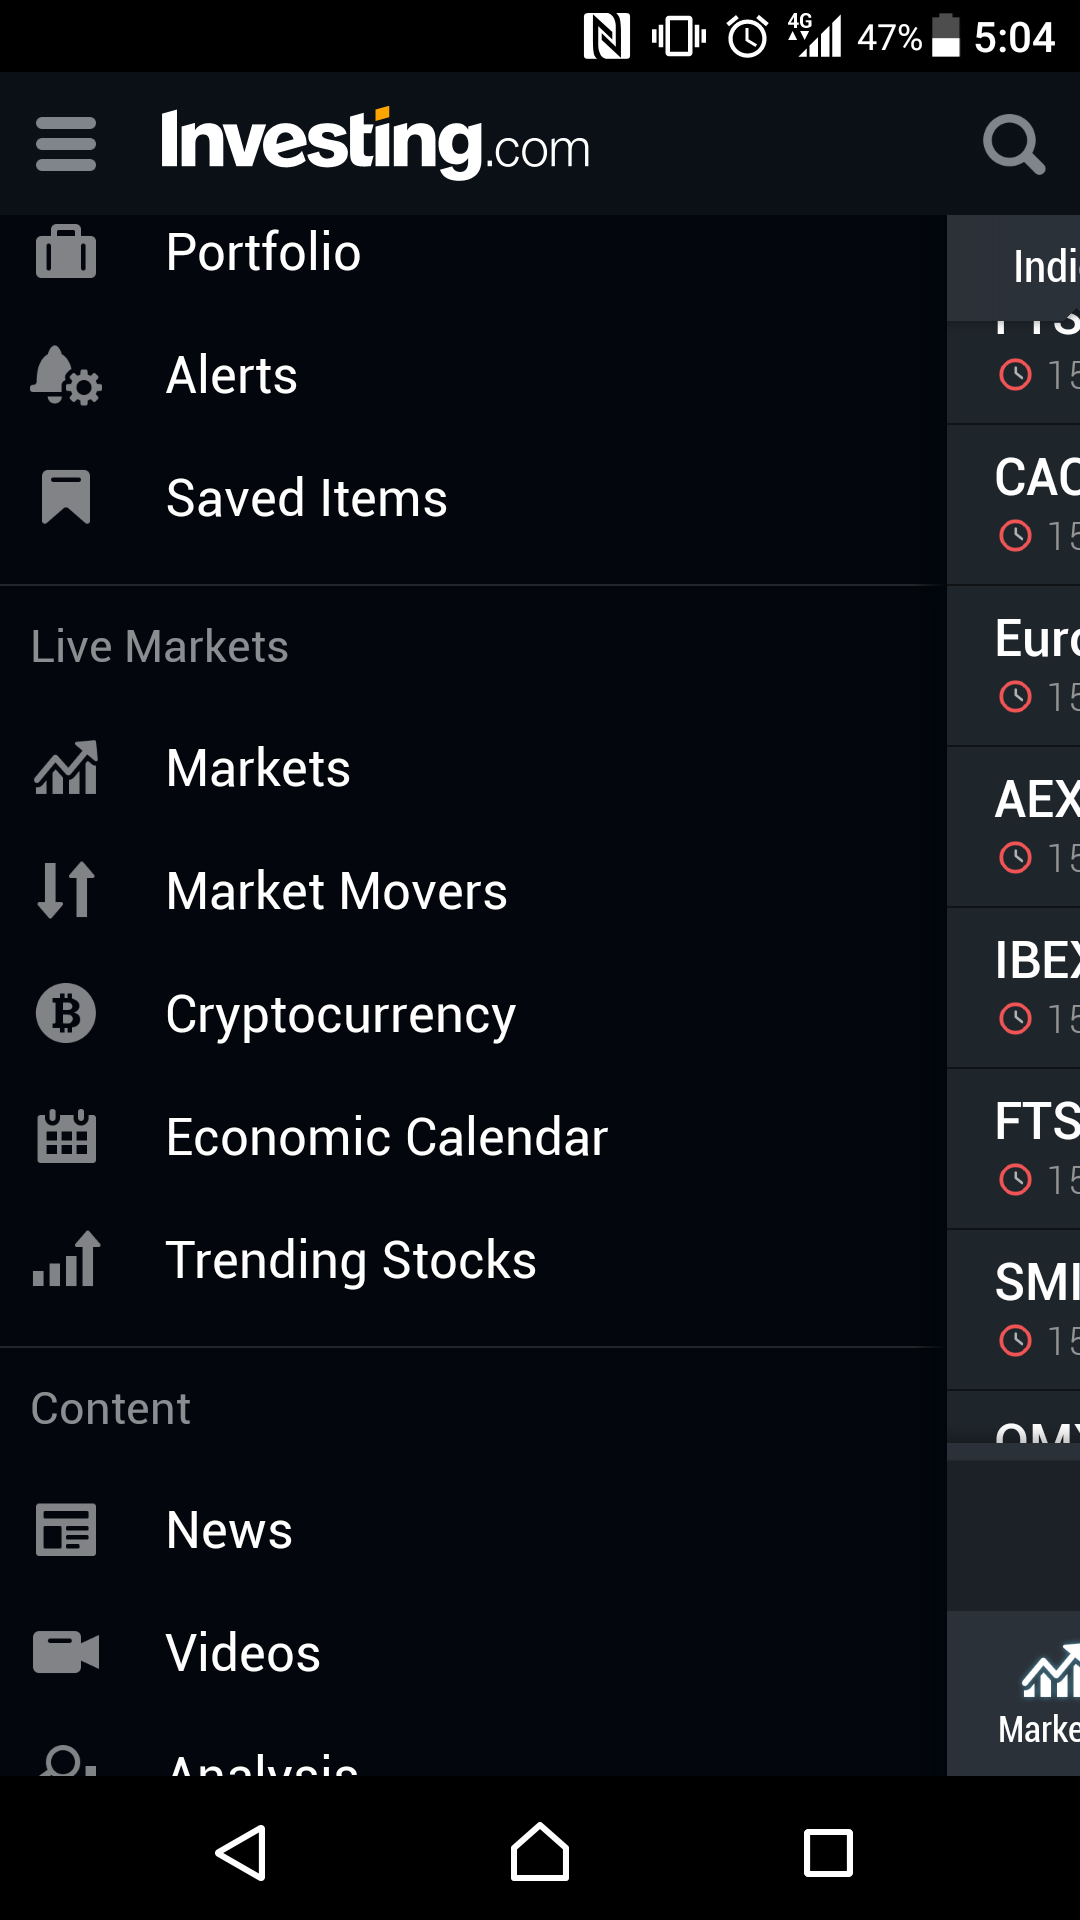 Best-trading-apps-Investing.com-menu